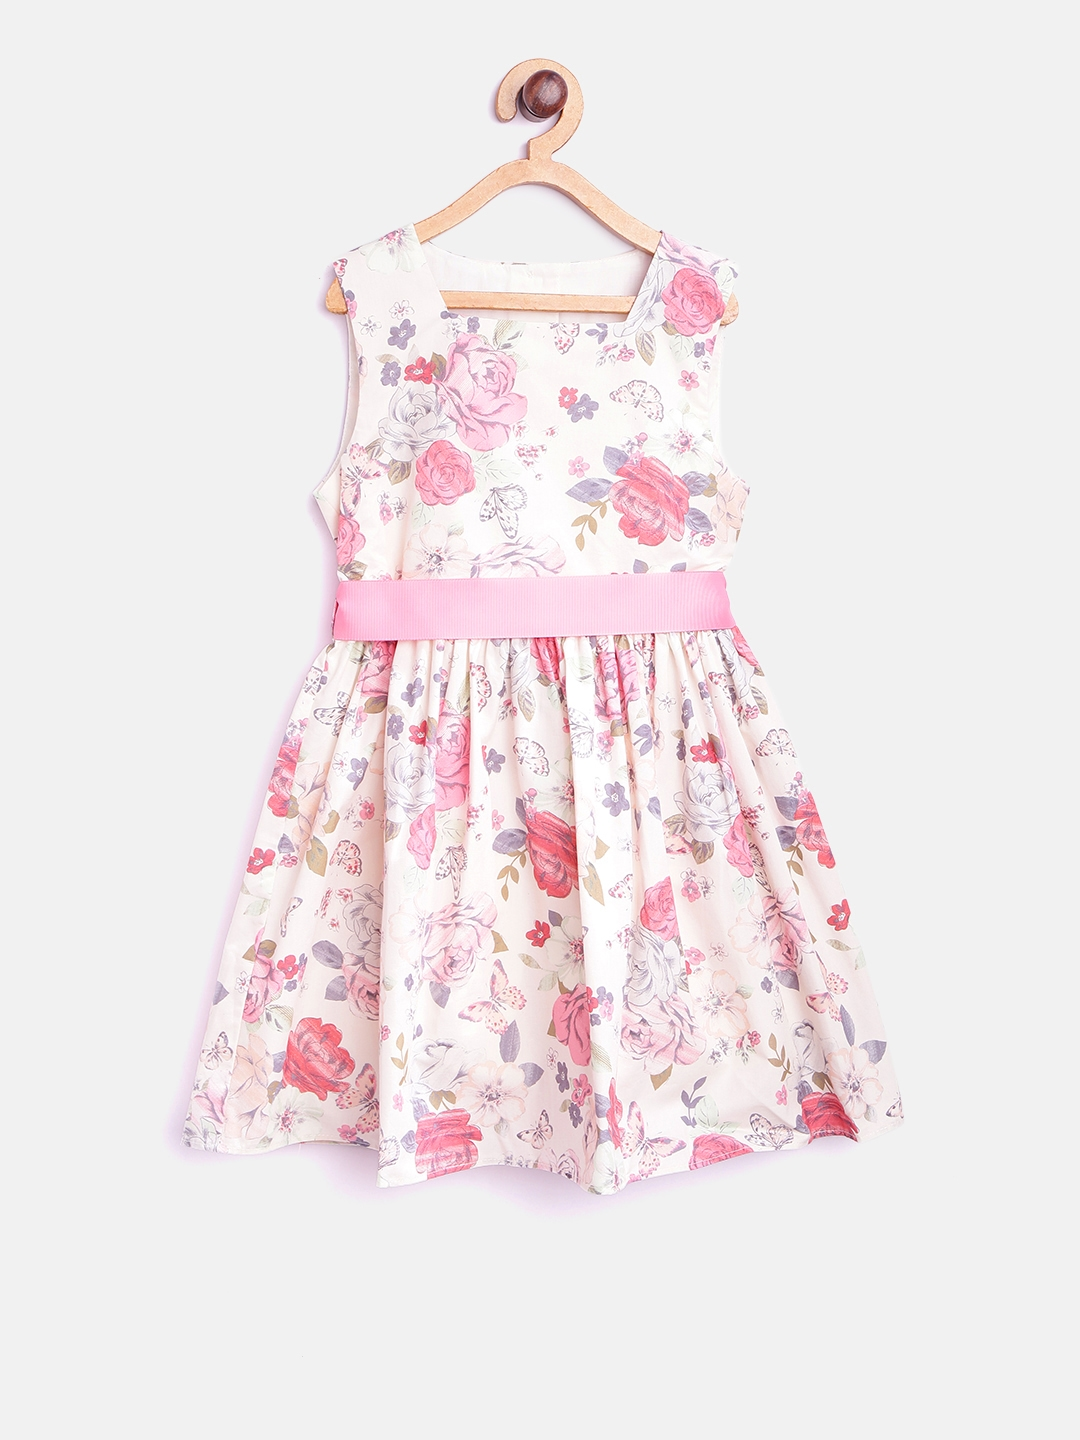 36379a98f Buy Mothercare Girls White   Pink Floral Print Fit   Flare Dress ...